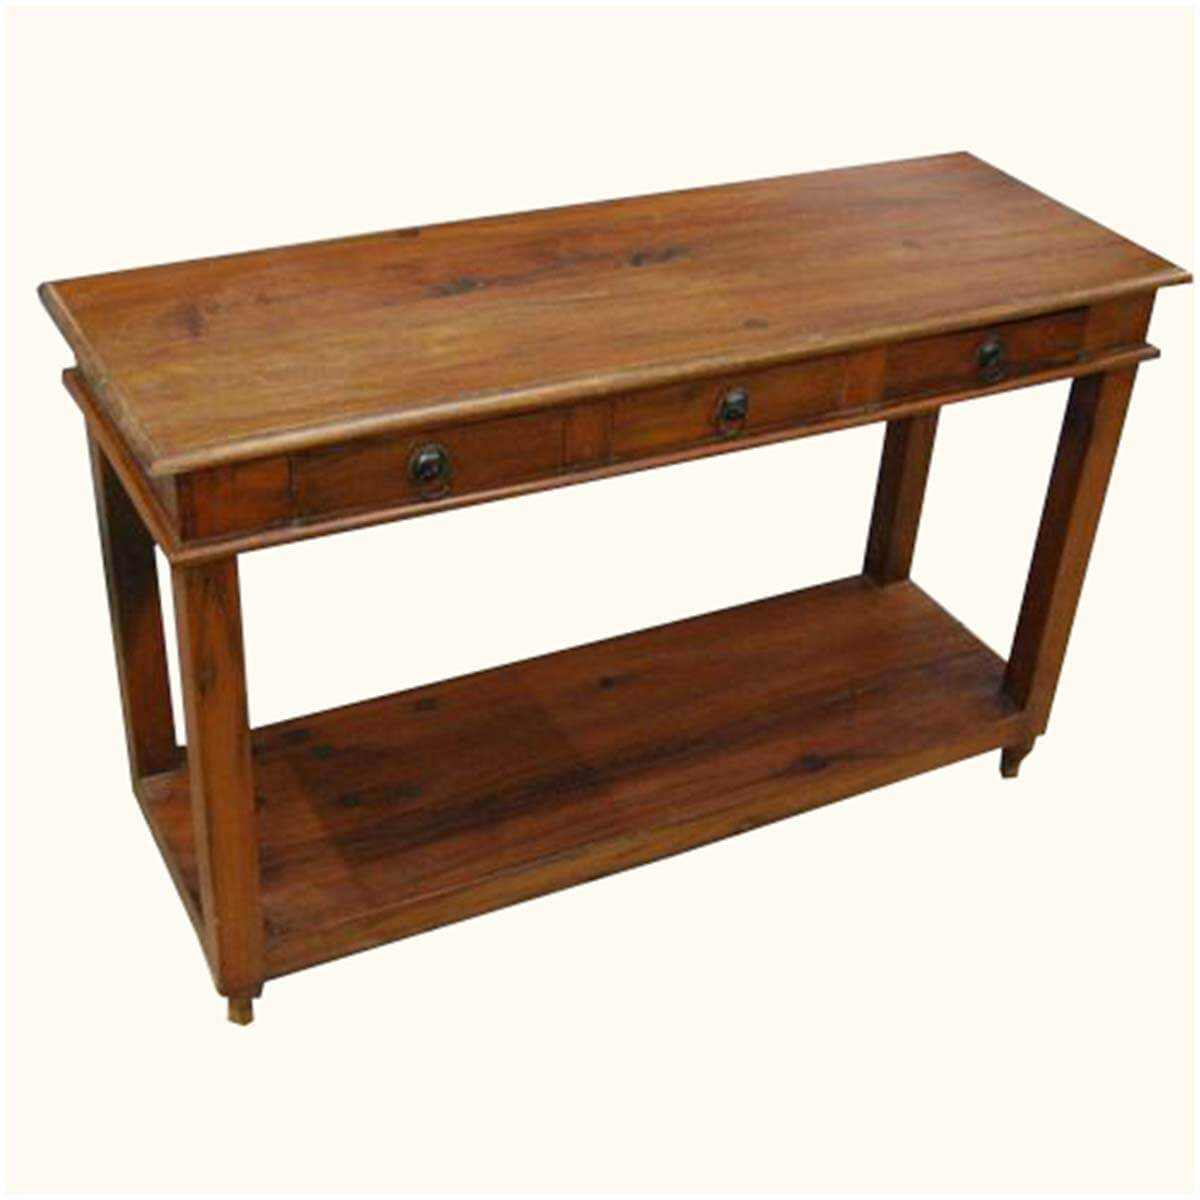 Foyer Table Drawers : Solid wood entry sofa hall console foyer table w drawers